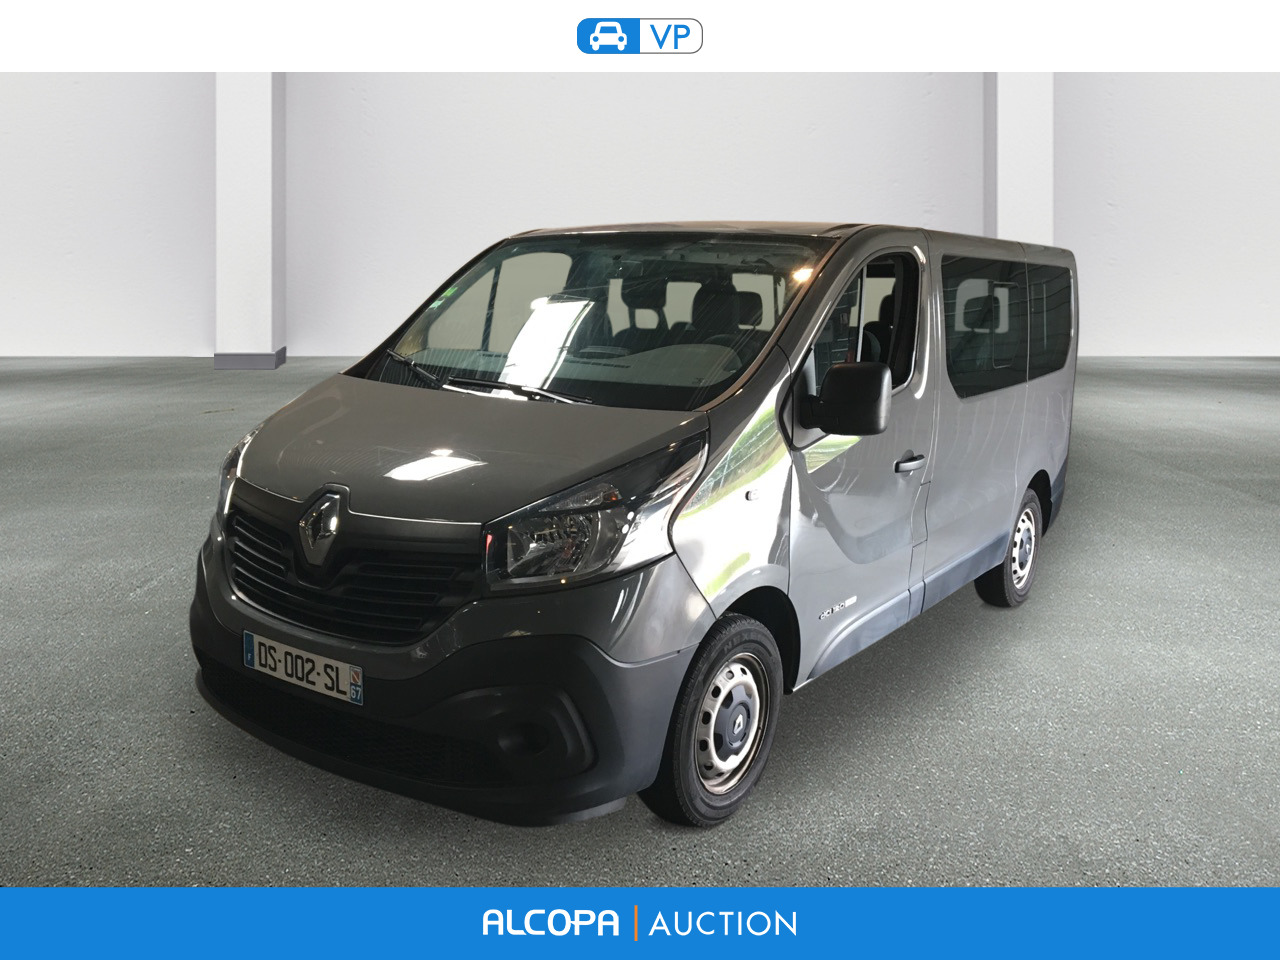 renault trafic trafic 1 6 dci 125 energy life 9 places nancy alcopa auction. Black Bedroom Furniture Sets. Home Design Ideas